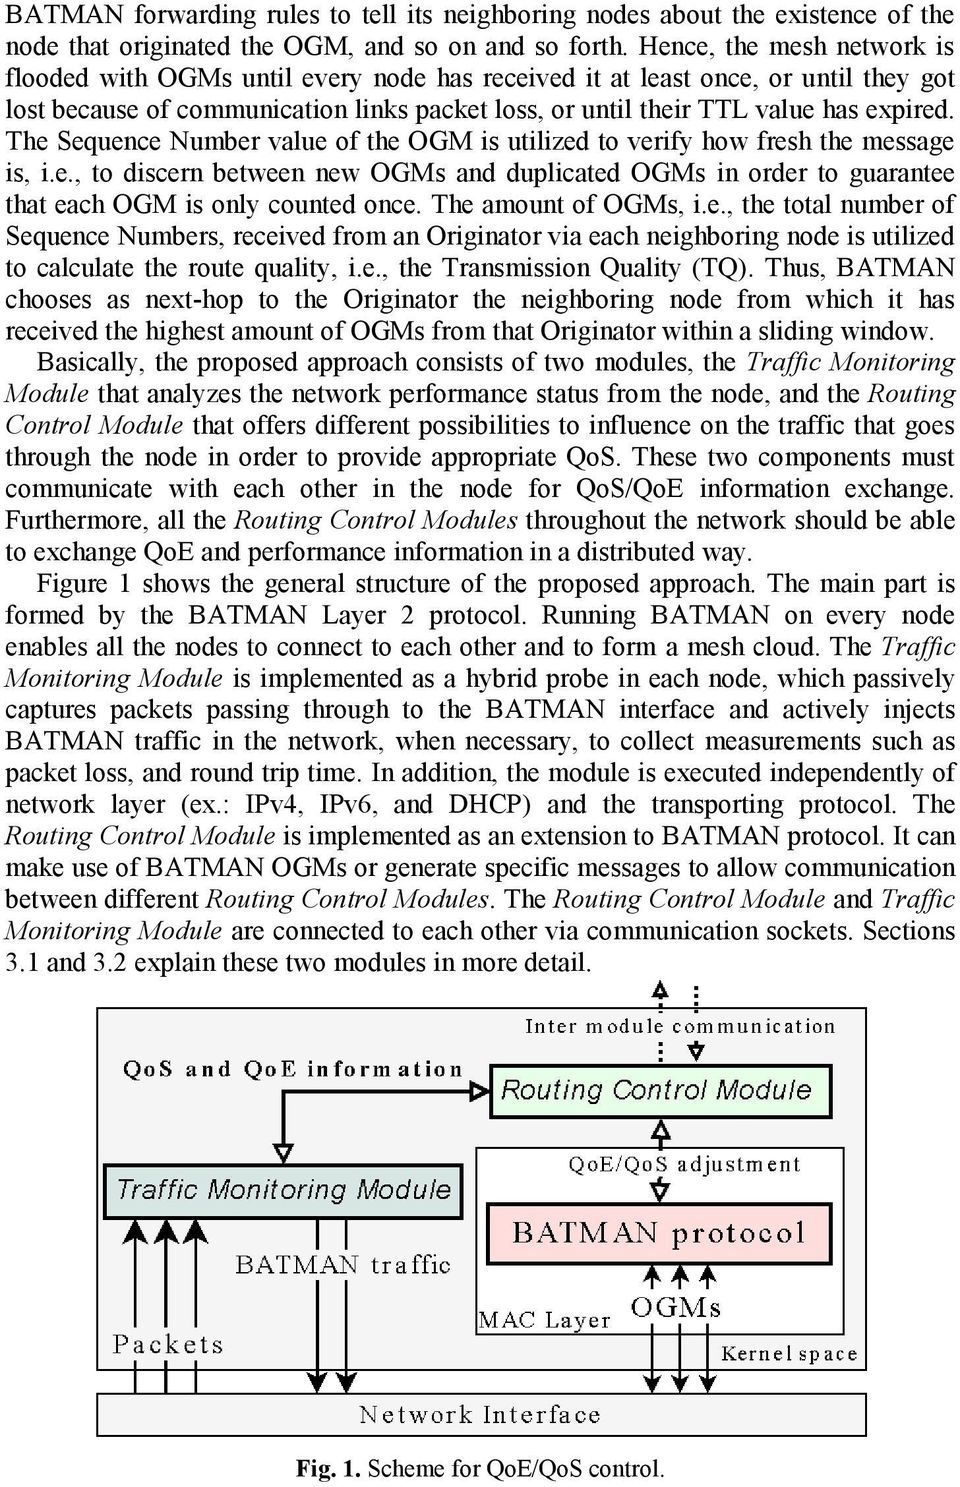 The Sequence Number value of the OGM is utilized to verify how fresh the message is, i.e., to discern between new OGMs and duplicated OGMs in order to guarantee that each OGM is only counted once.